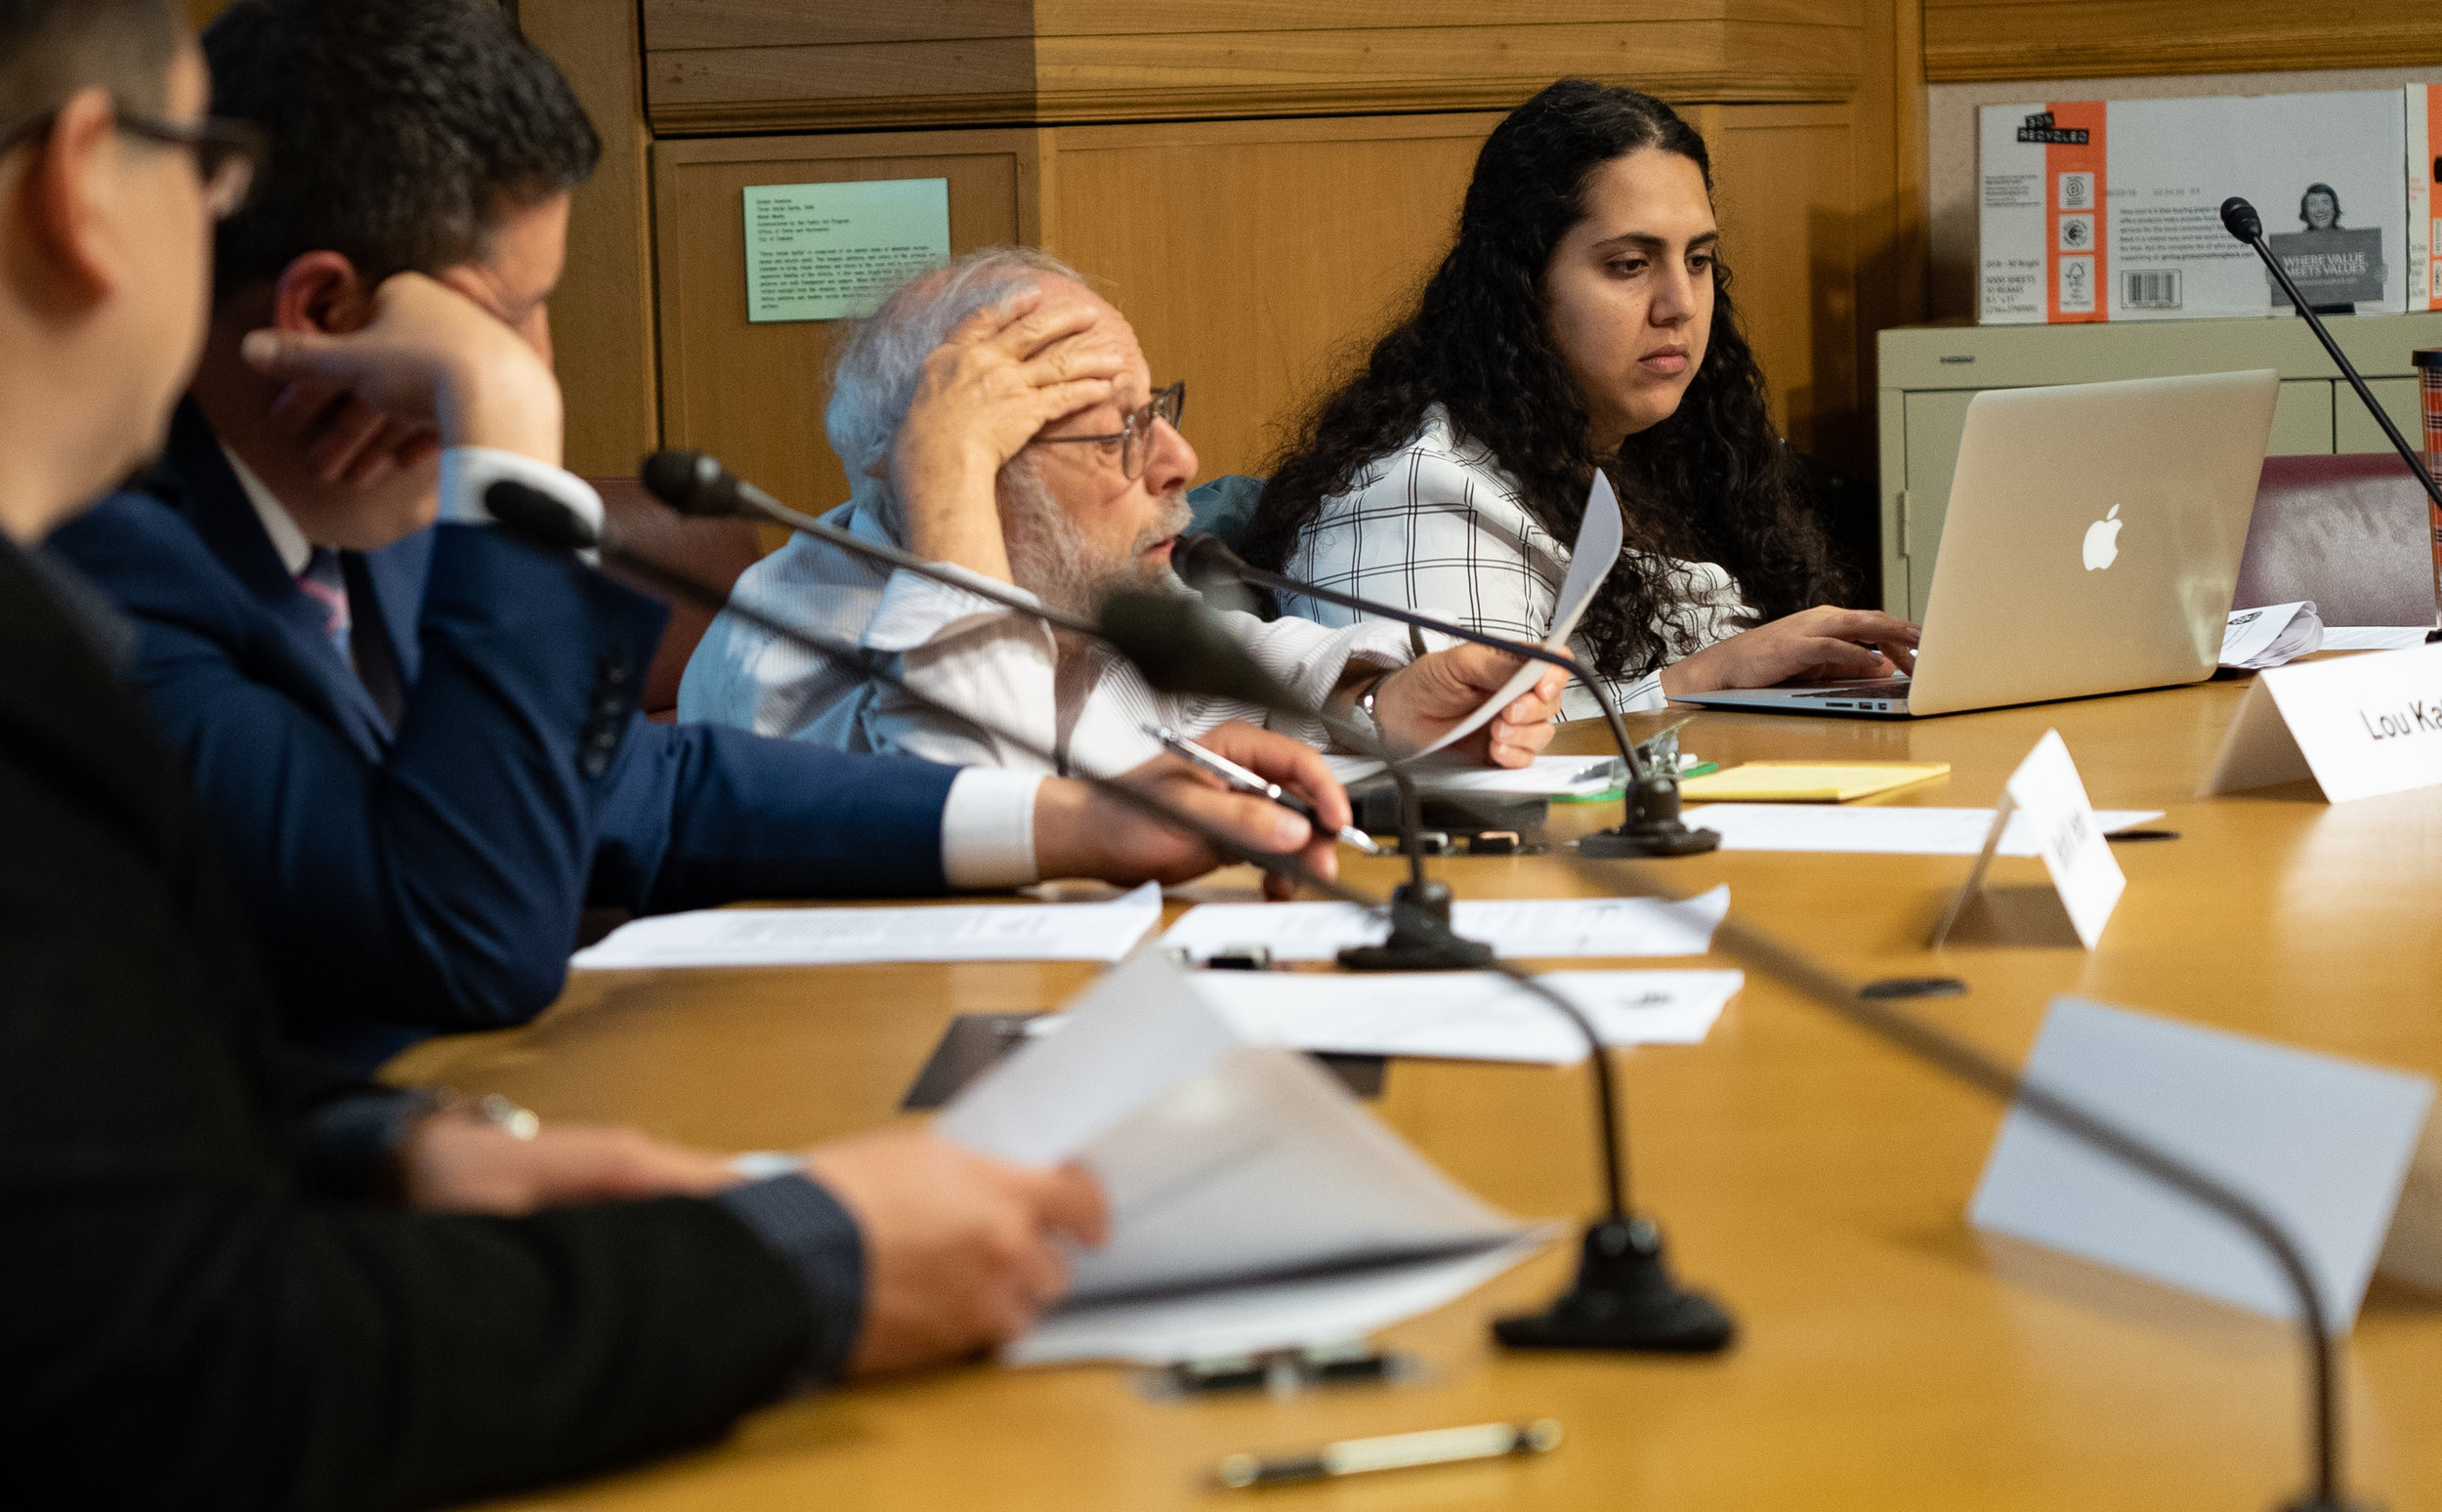 OPAC members Brian Hofer, Lou Katz, and Reem Suleiman review notes during the Commission's April 2019 meeting.